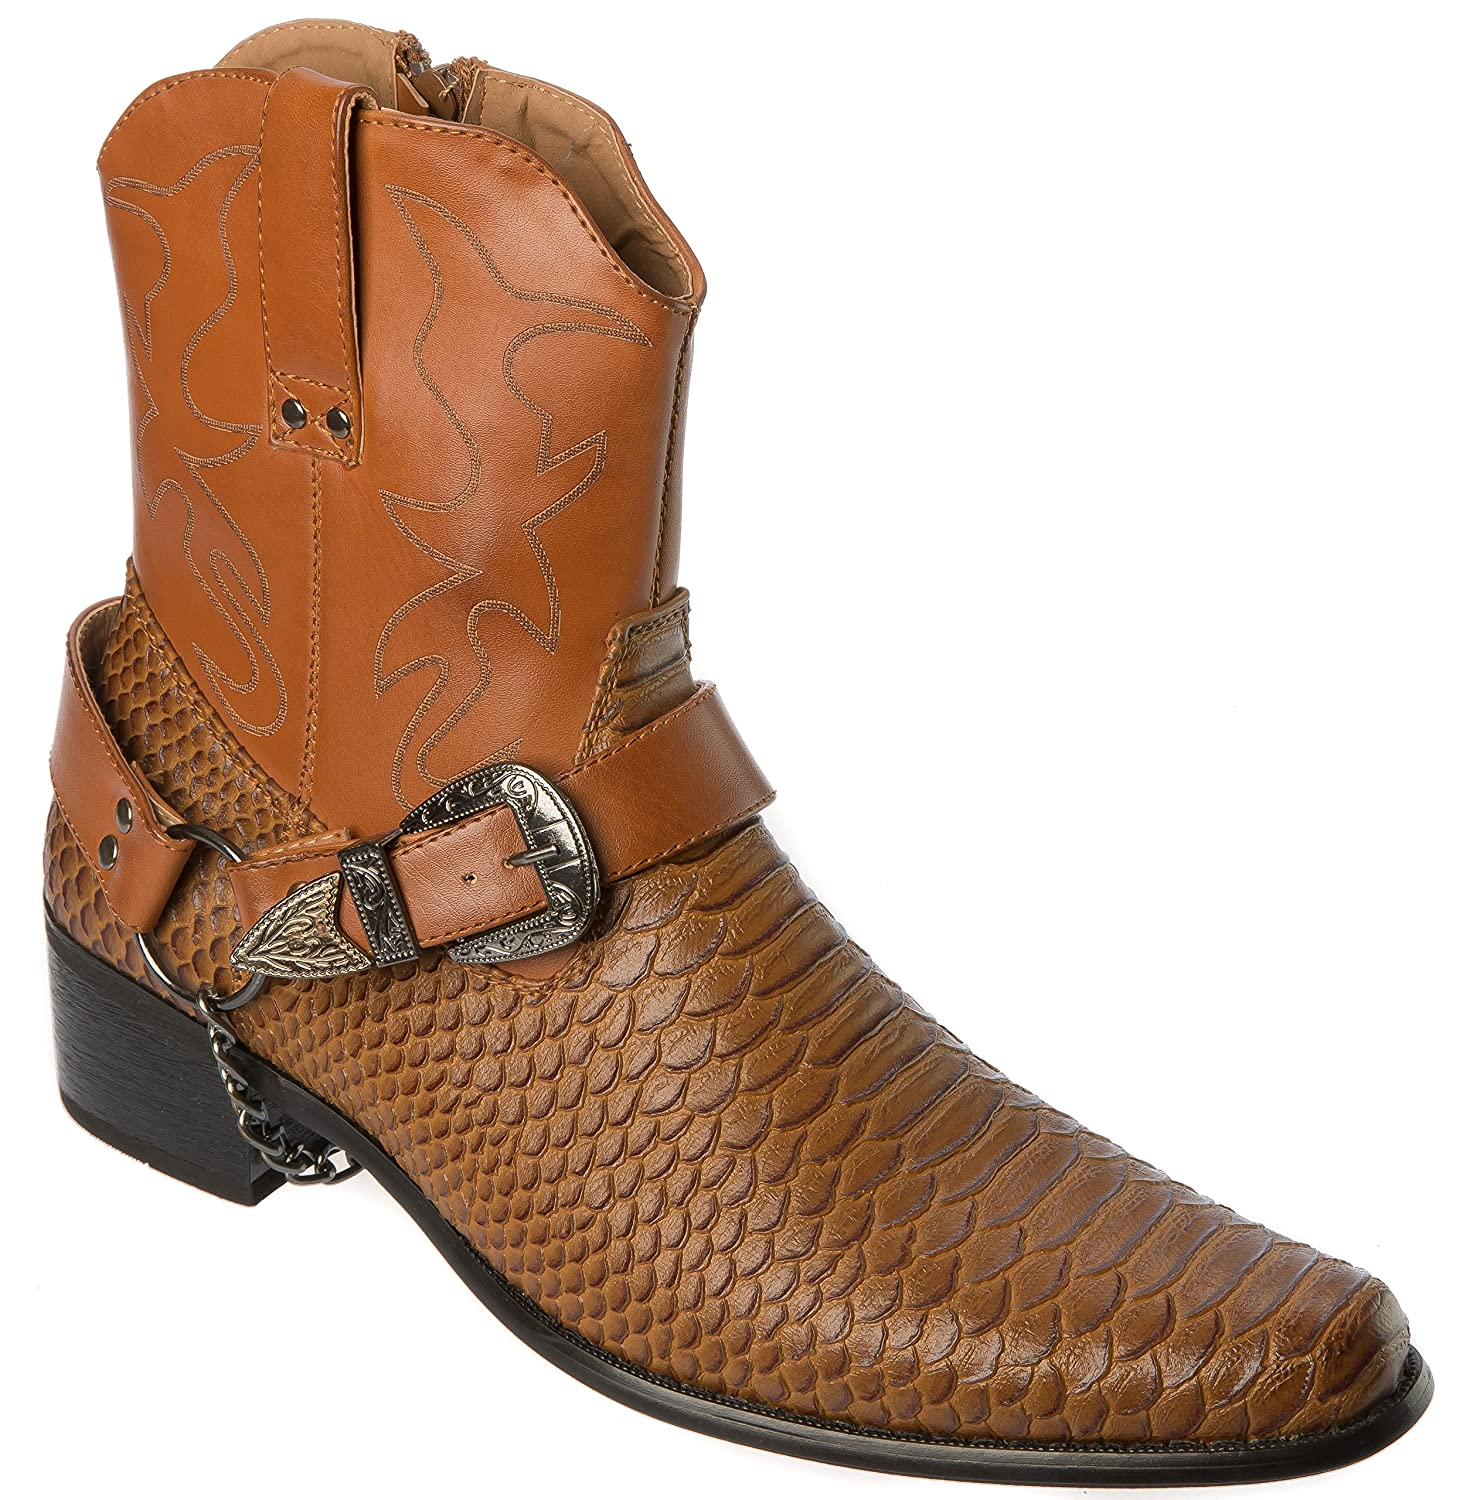 low priced 36295 61392 Alberto Fellini Mens Western-Boots Side Zipper Belt Chain Buckle and Metal  Chain Belt Croc Skin Patten Cowboy Boots B072LQ8TFT Western 695fa9